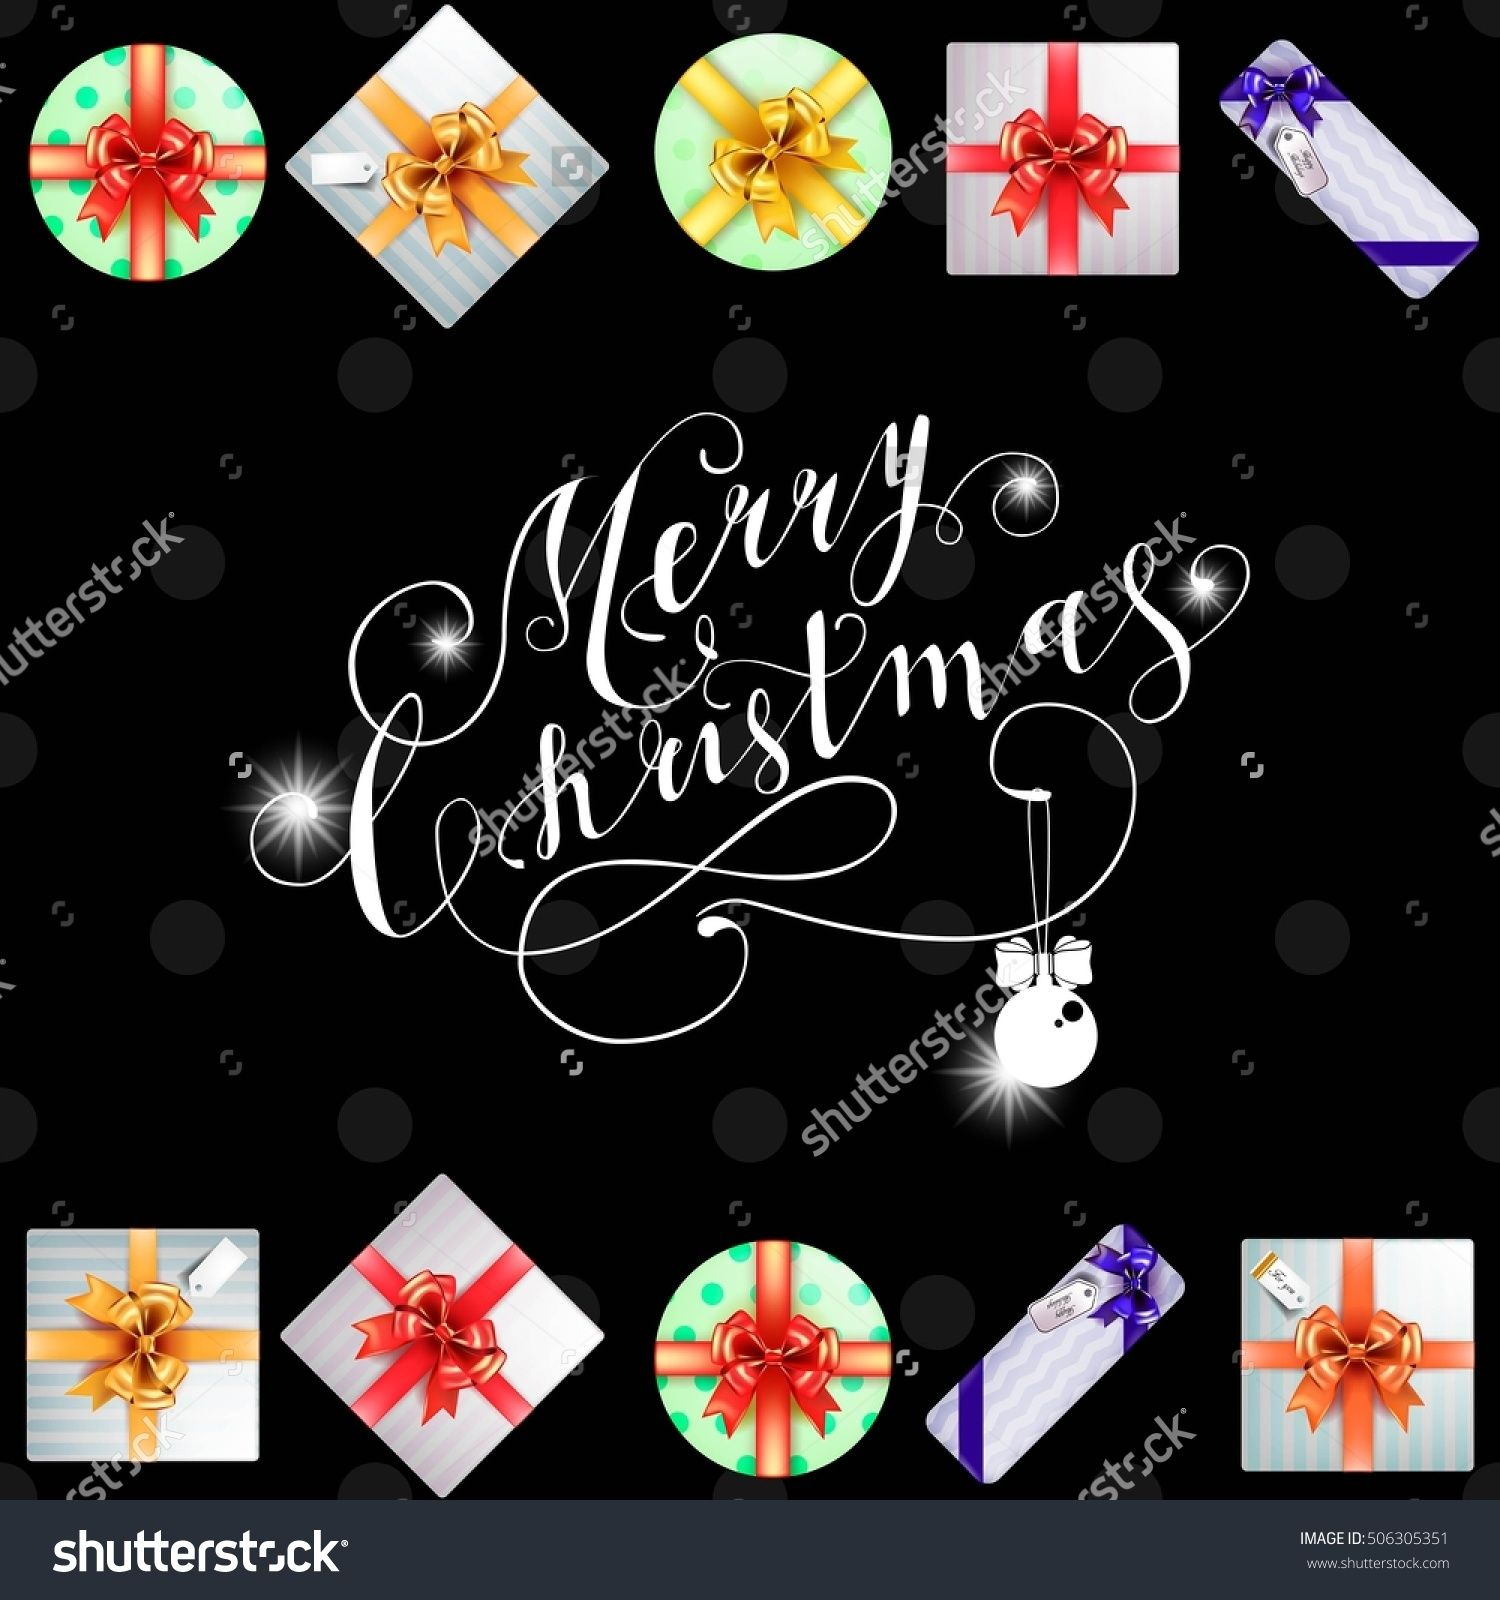 Lettering Merry Christmas And Happy New Year Christmas Symbols And